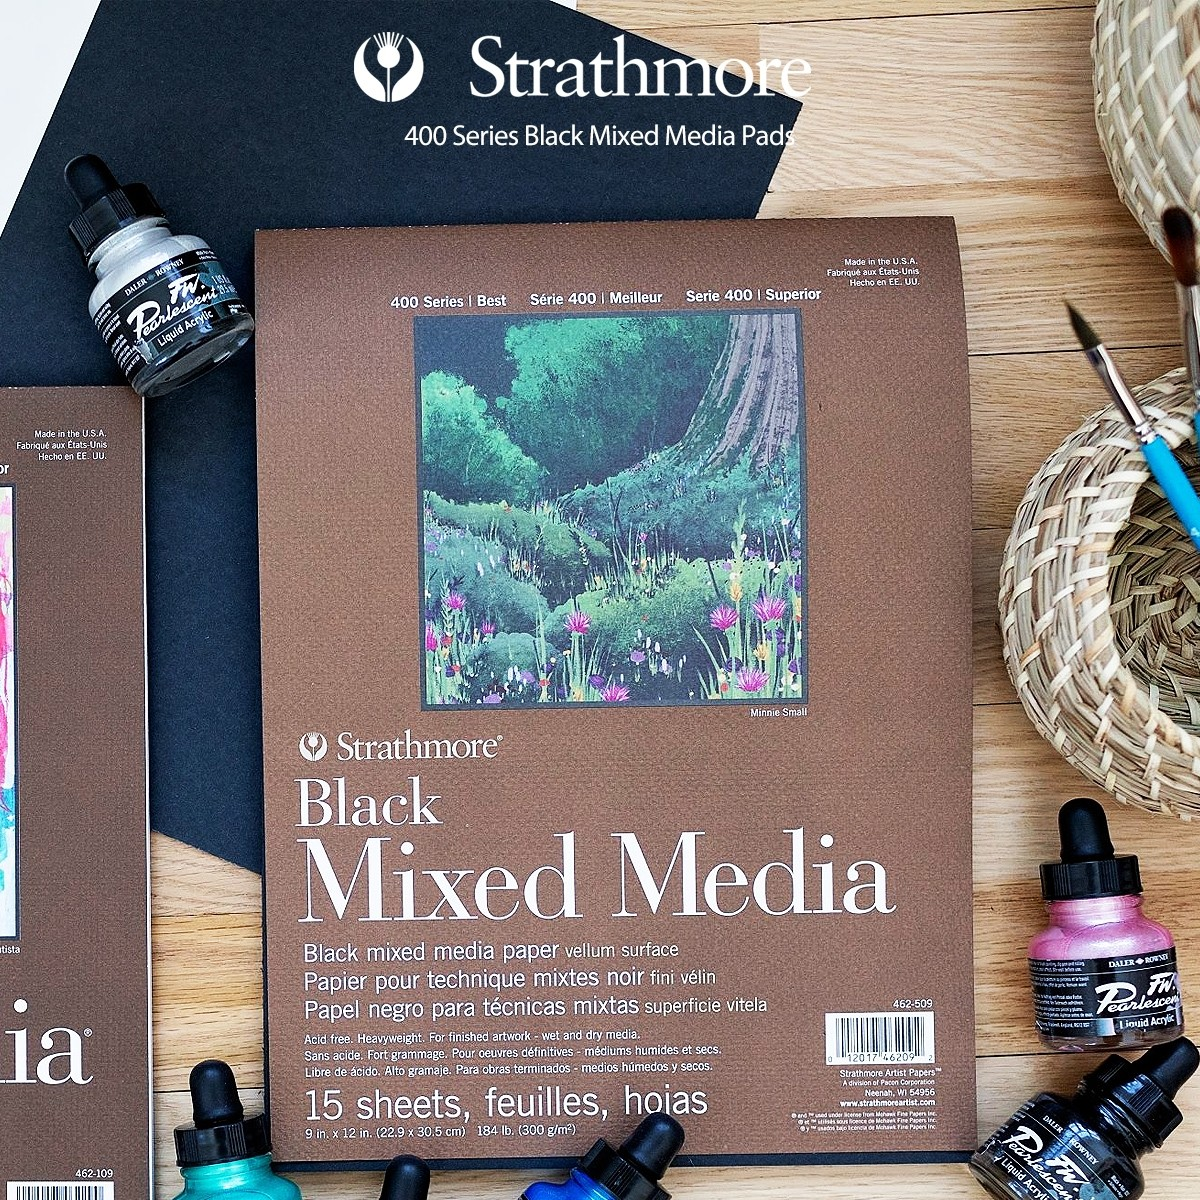 Strathmore 400 Series Black Mixed Media Paper Pads